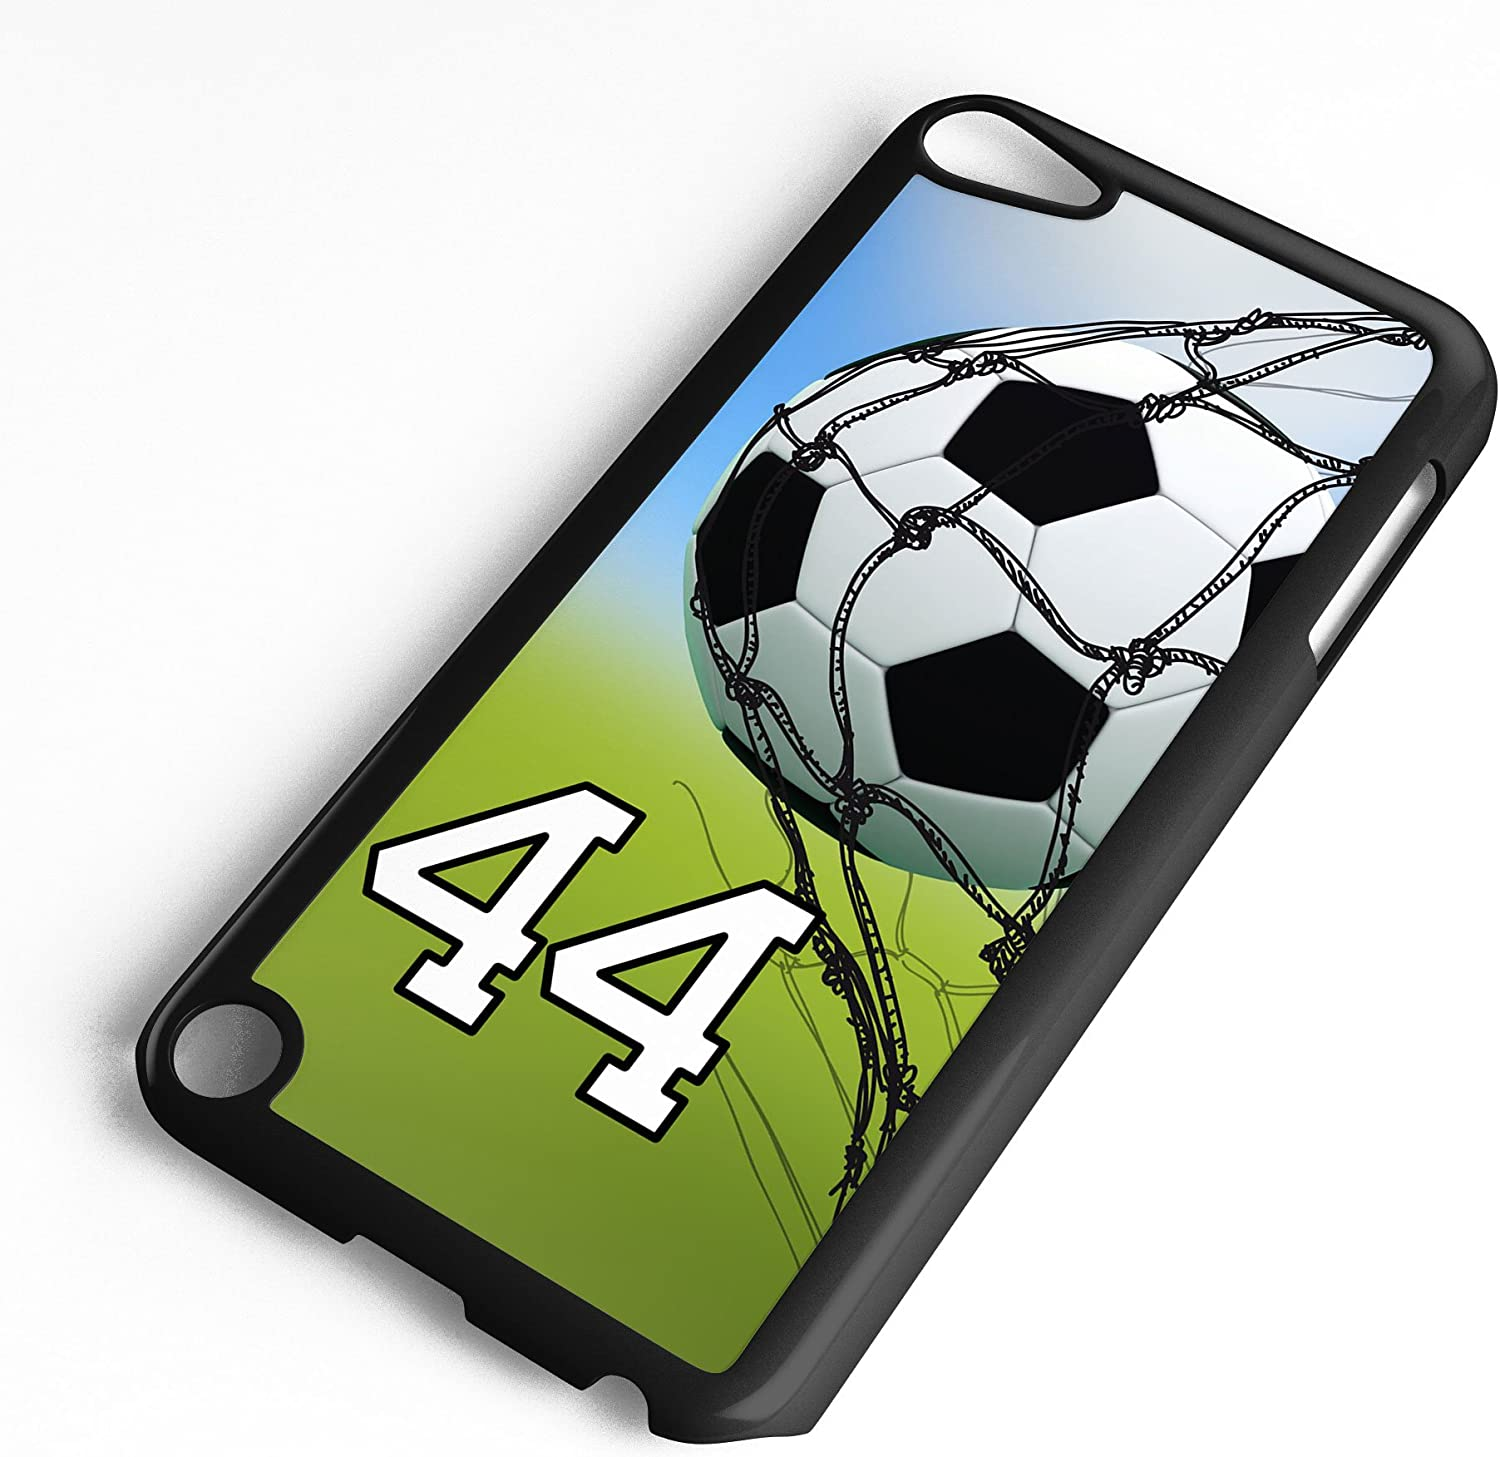 iPod Touch Case Fits 6th Generation or 5th Generation Soccer Ball #0500 Choose Any Player Jersey Number 13 in Black Plastic Customizable by TYD Designs